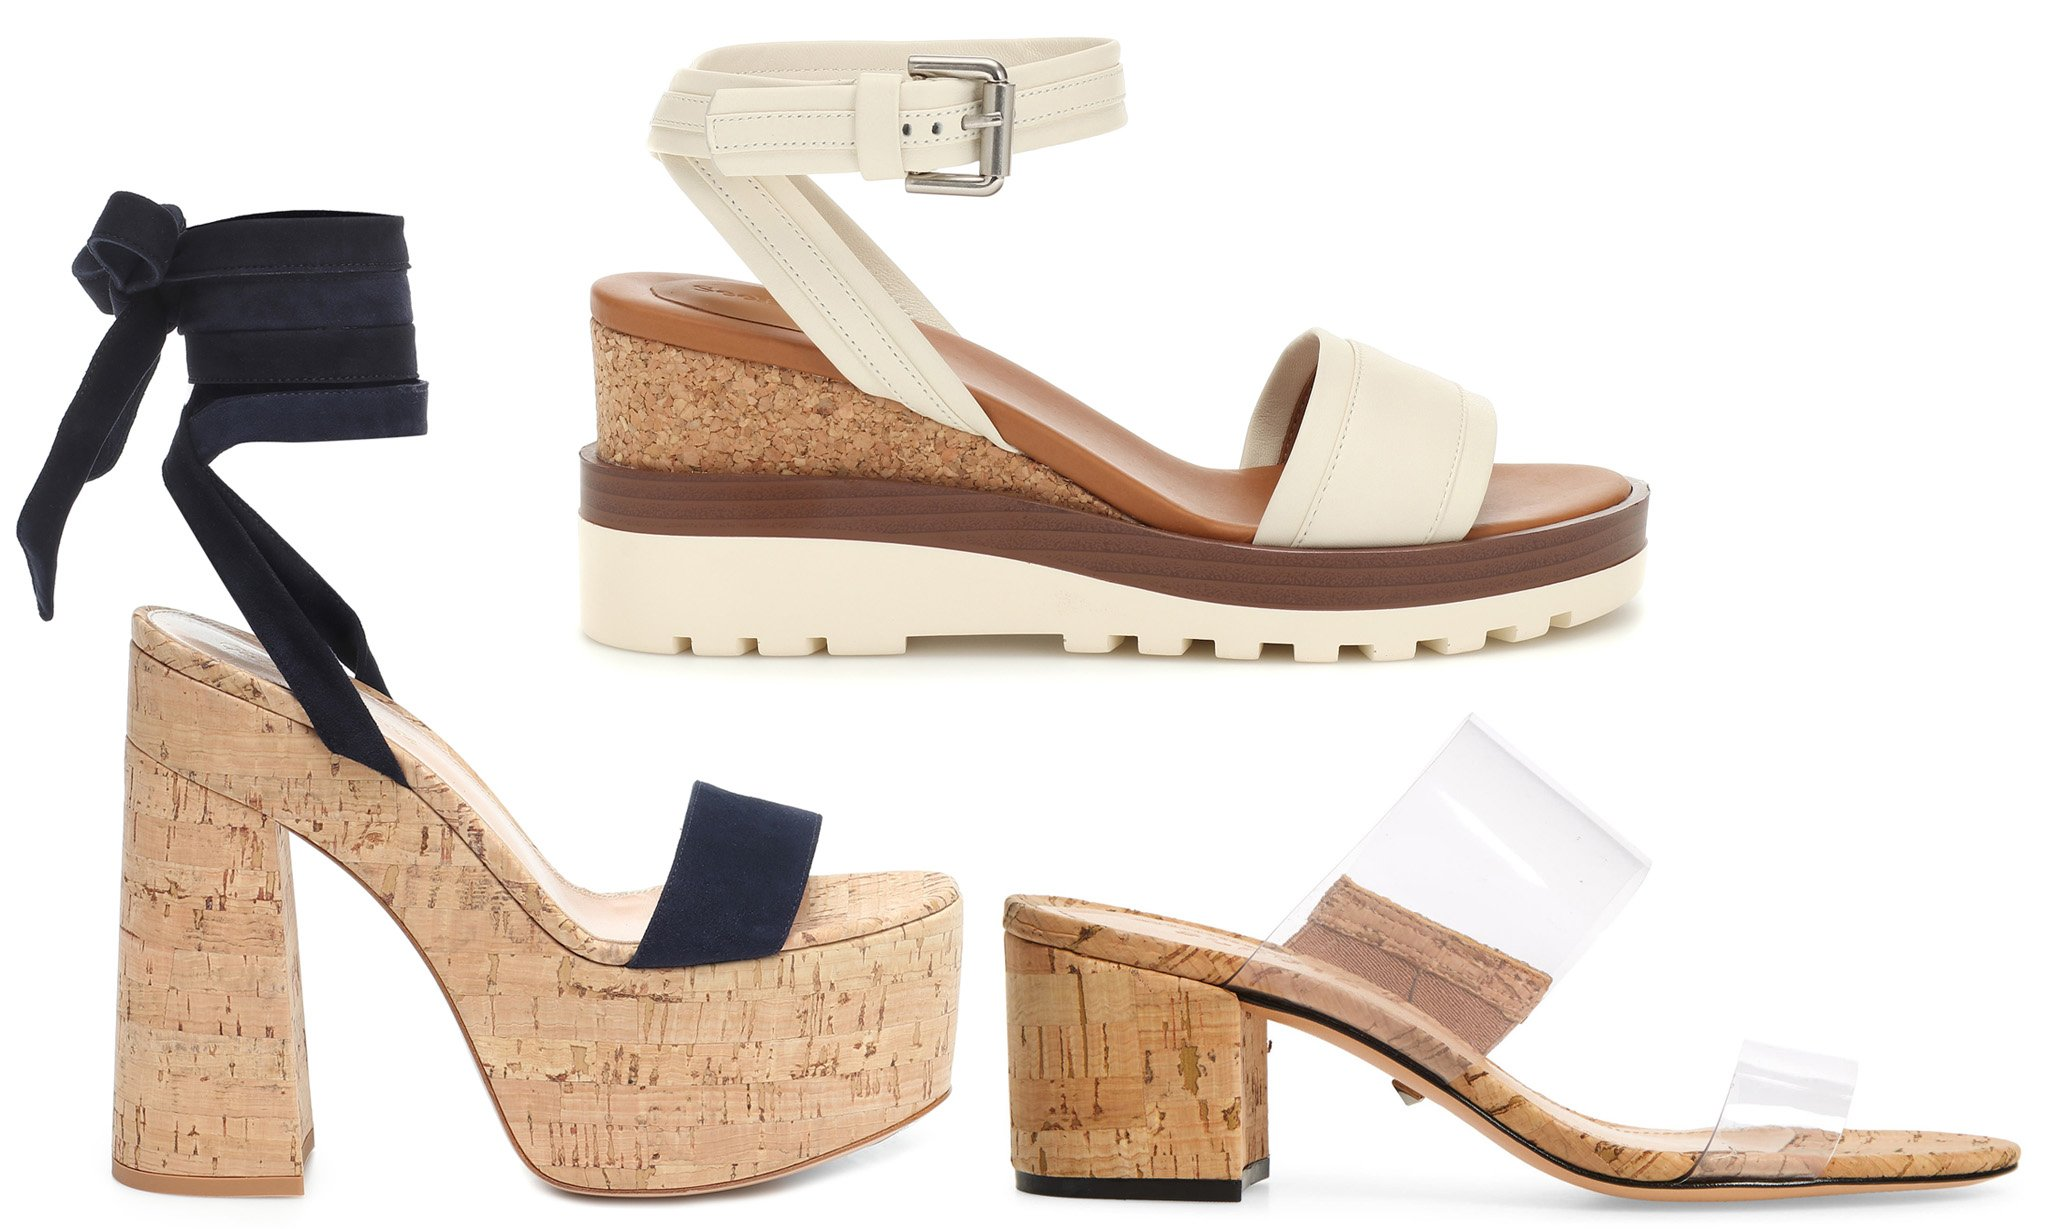 Cork heels are lightweight yet durable and chic, especially during summer